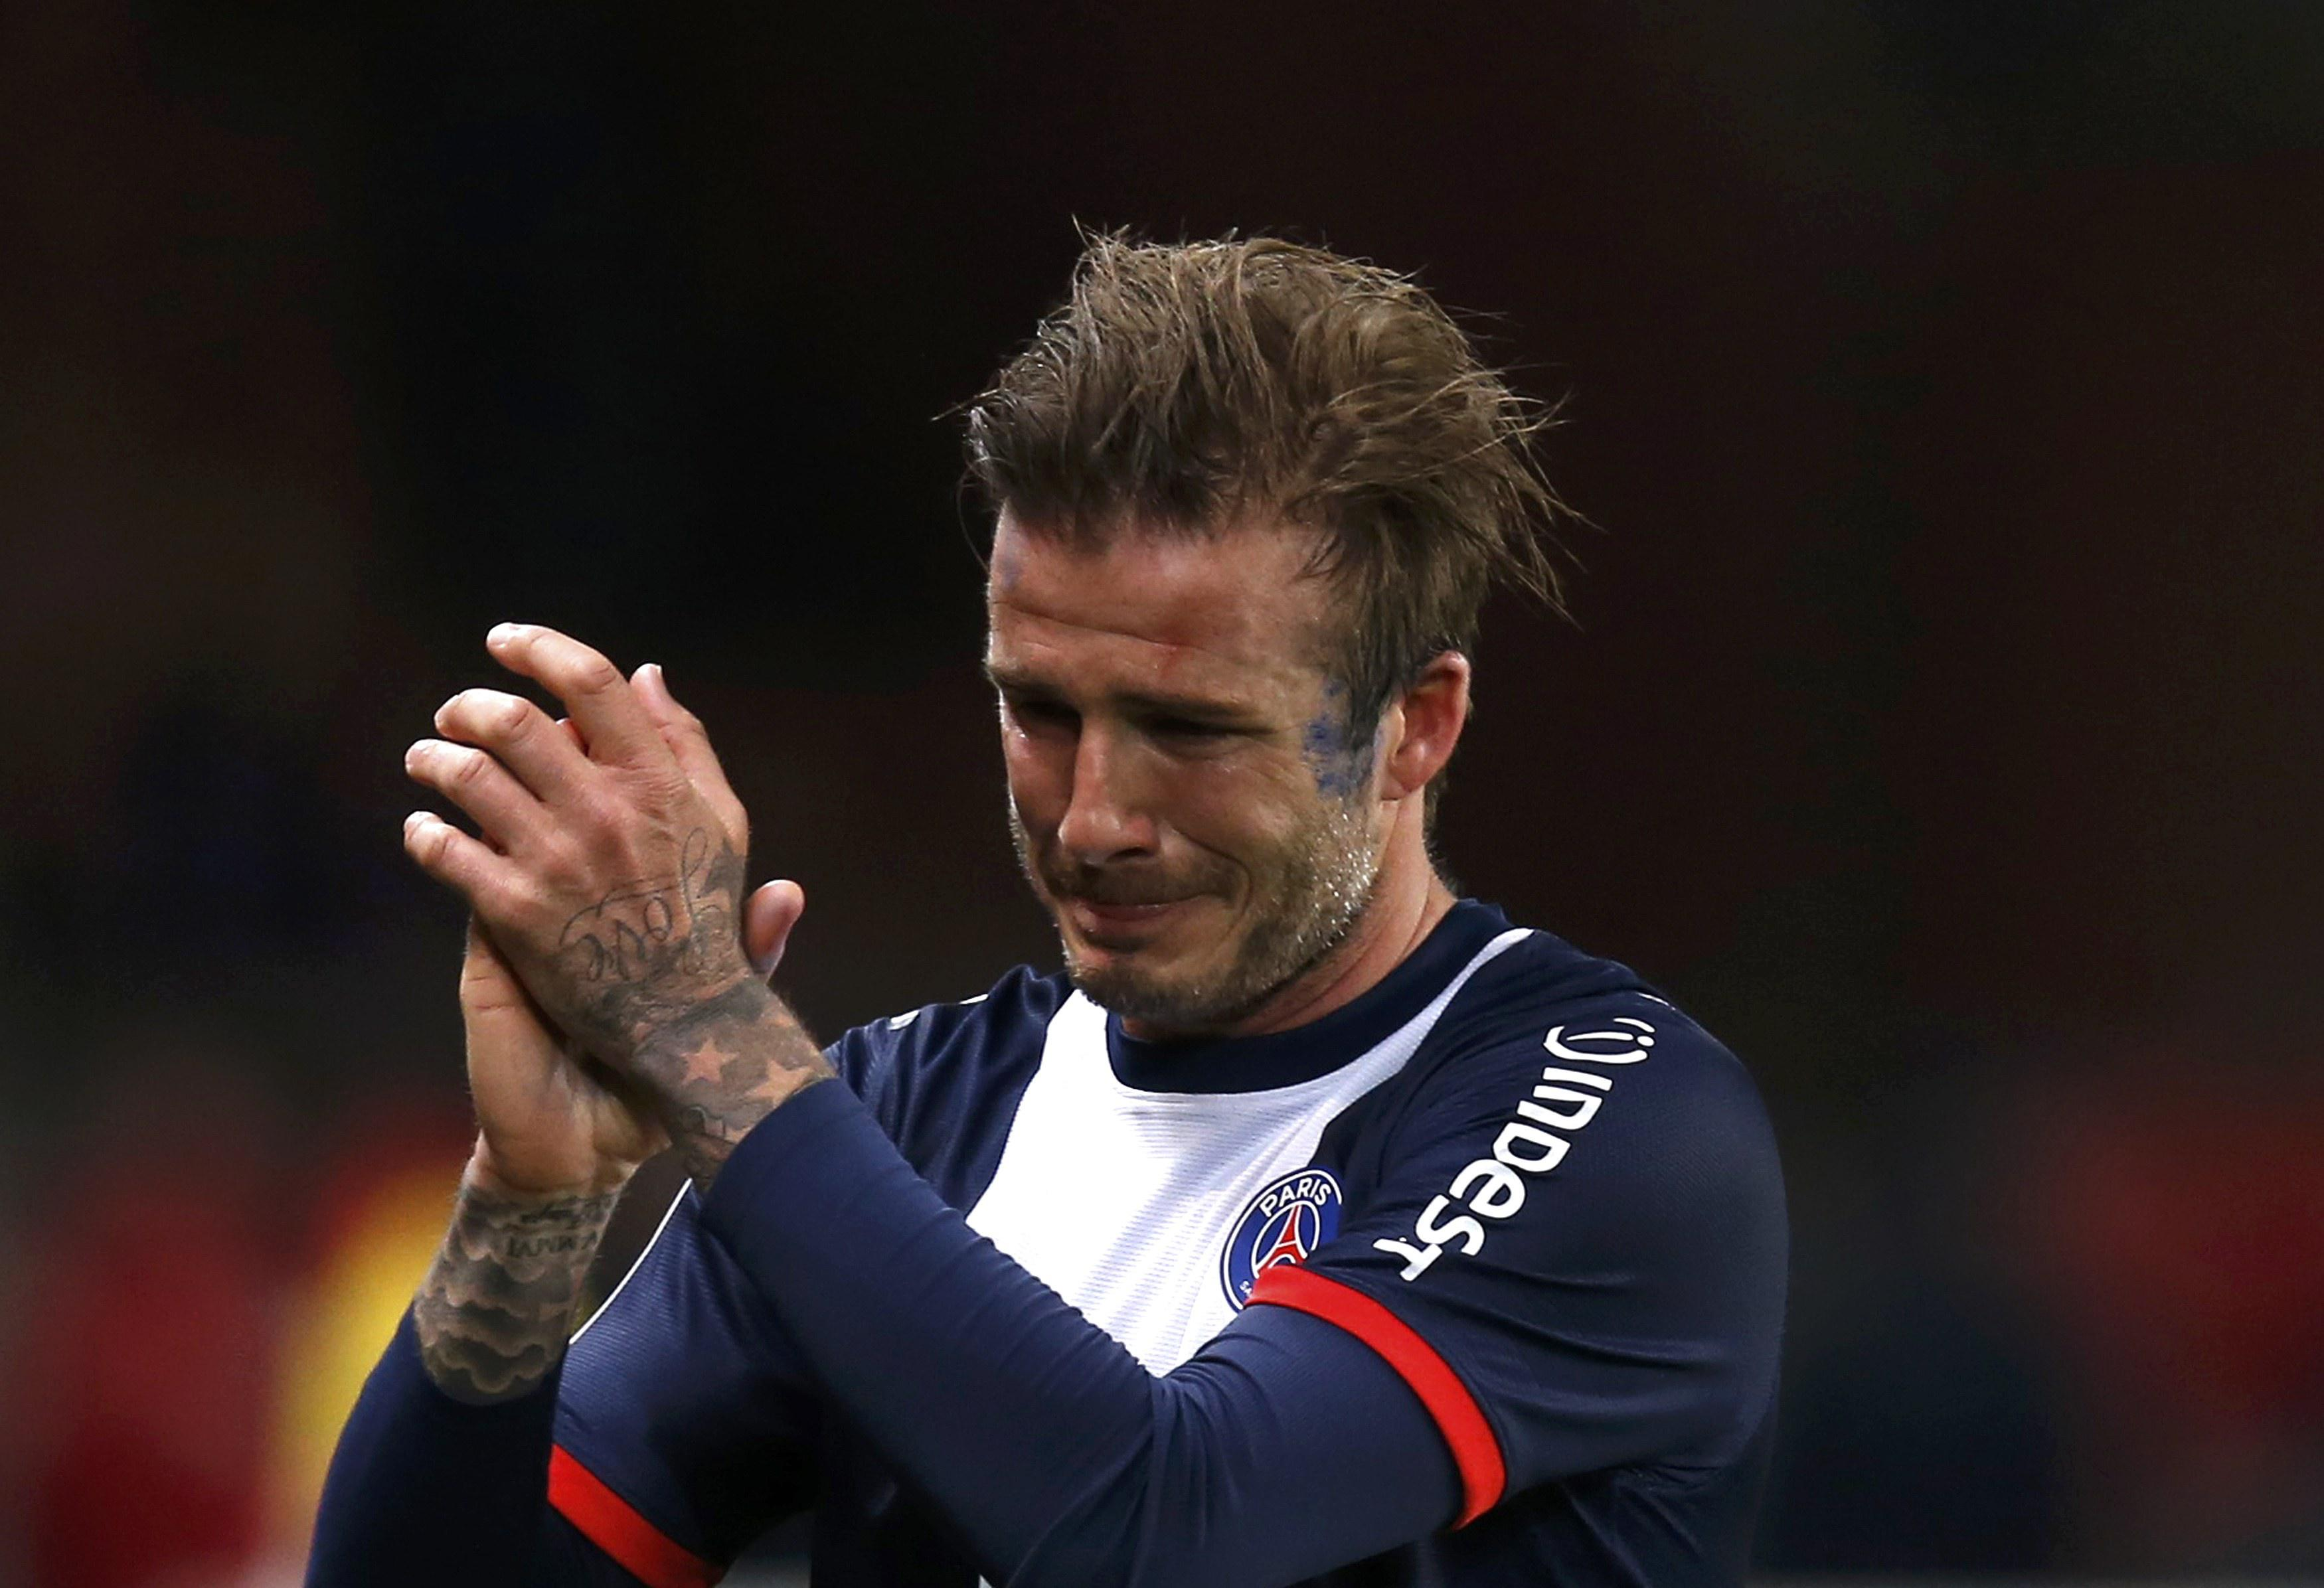 David Beckham could not contain himself after playing his last-ever game